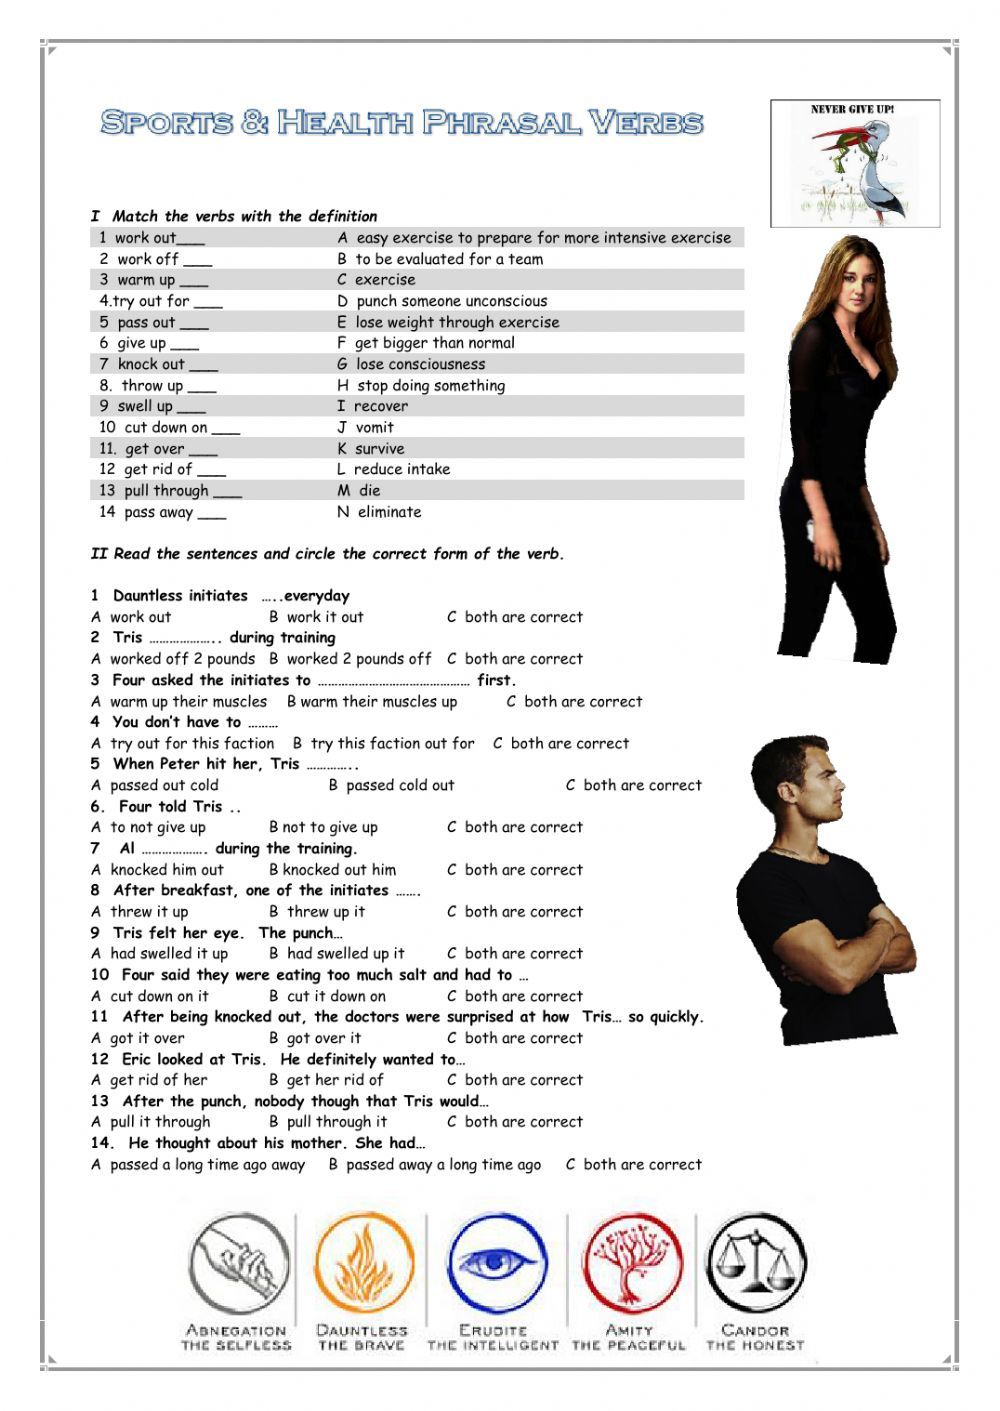 Phrasal verbs interactive and downloadable worksheet. You